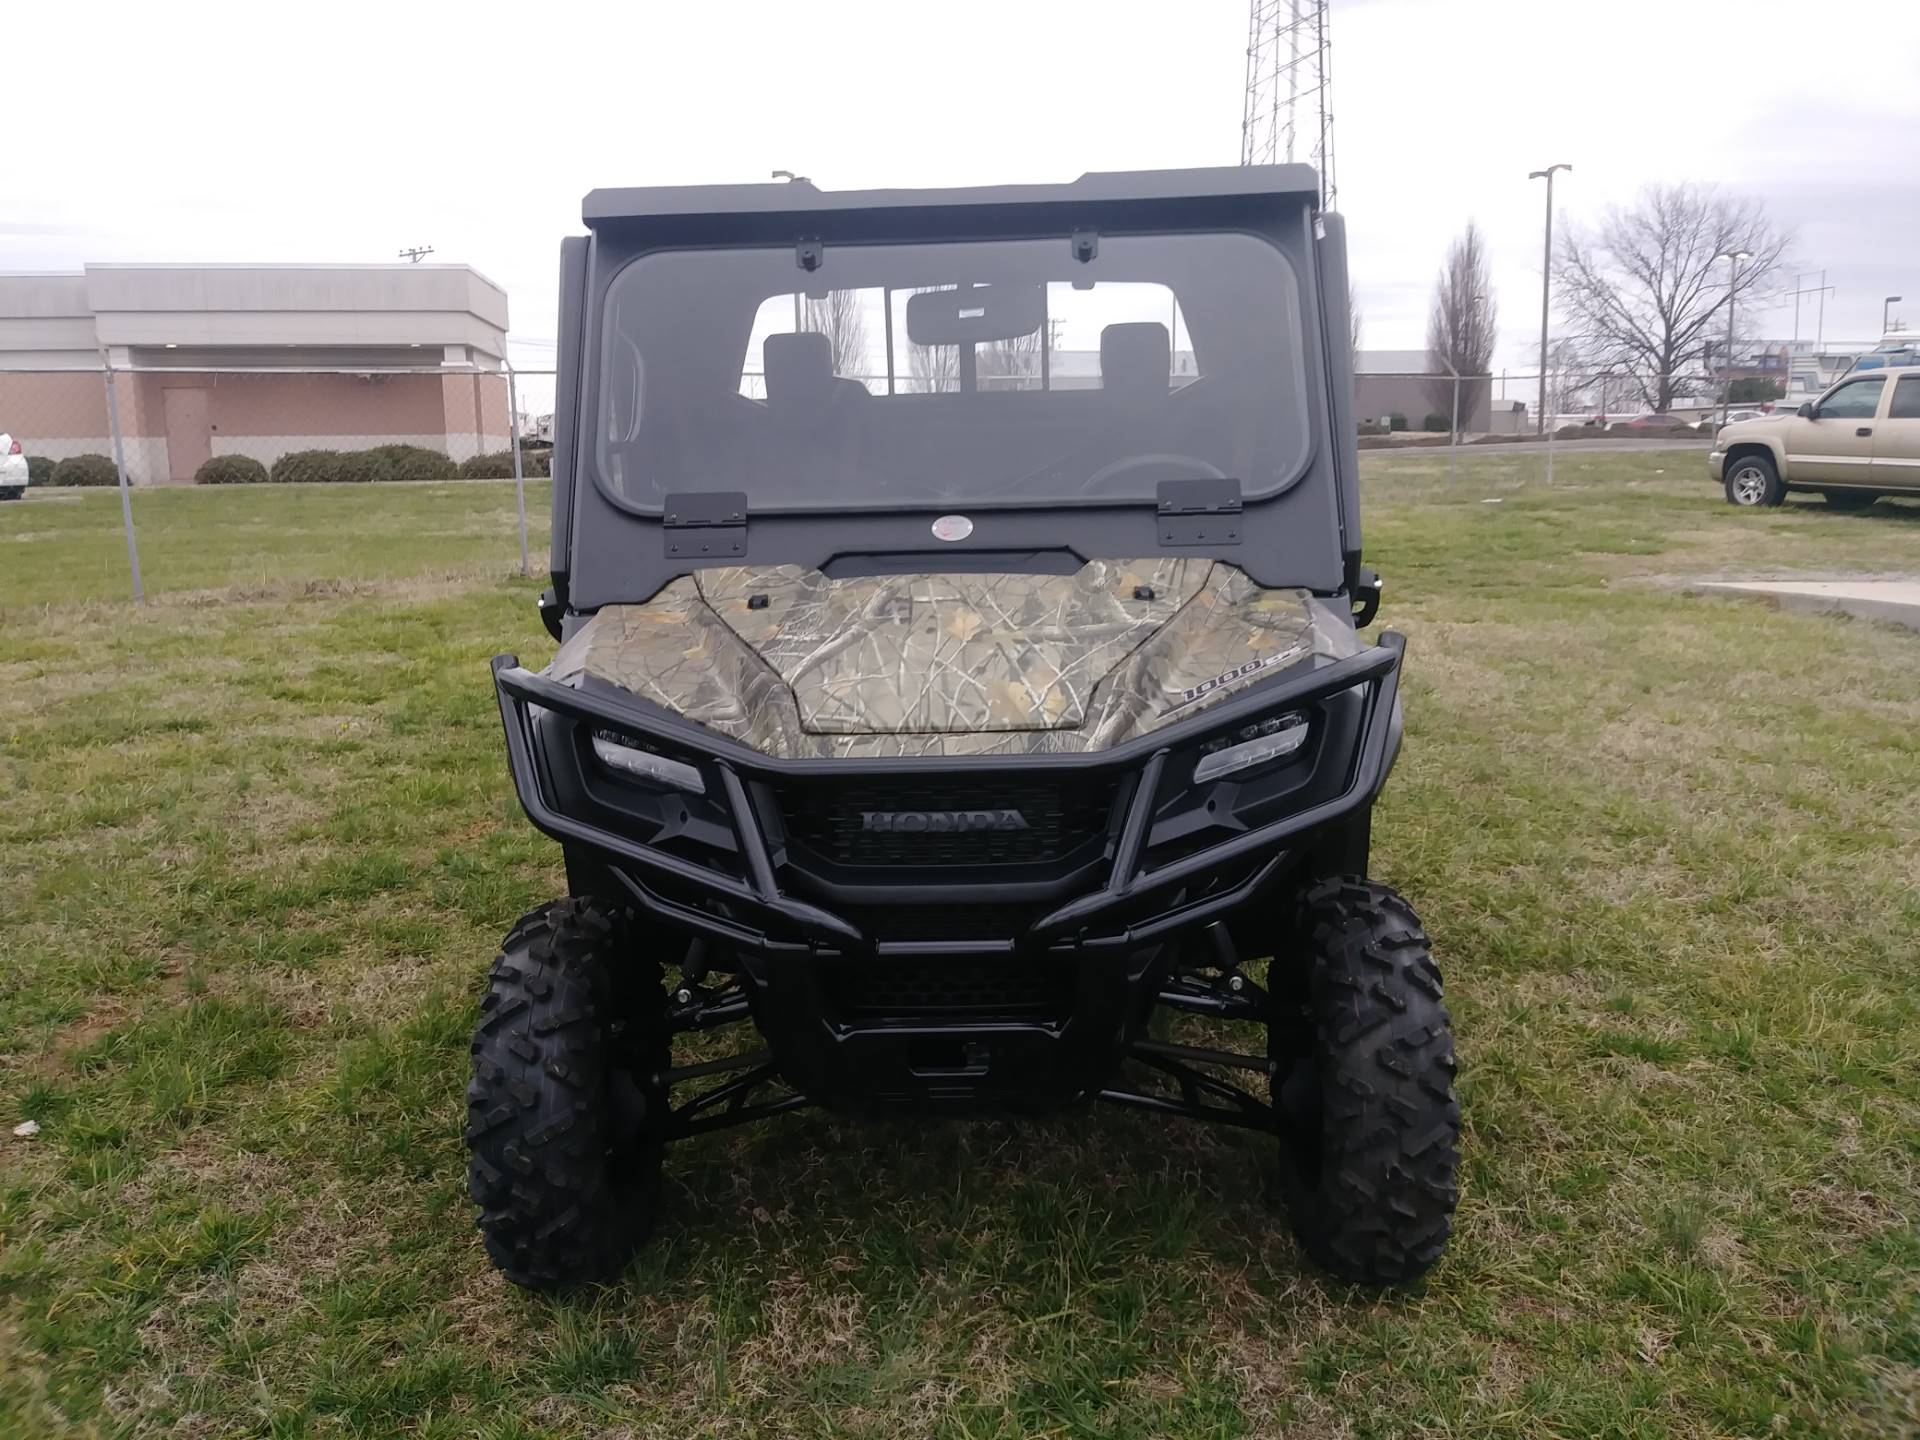 2020 Honda Pioneer 1000 Deluxe in Winchester, Tennessee - Photo 2